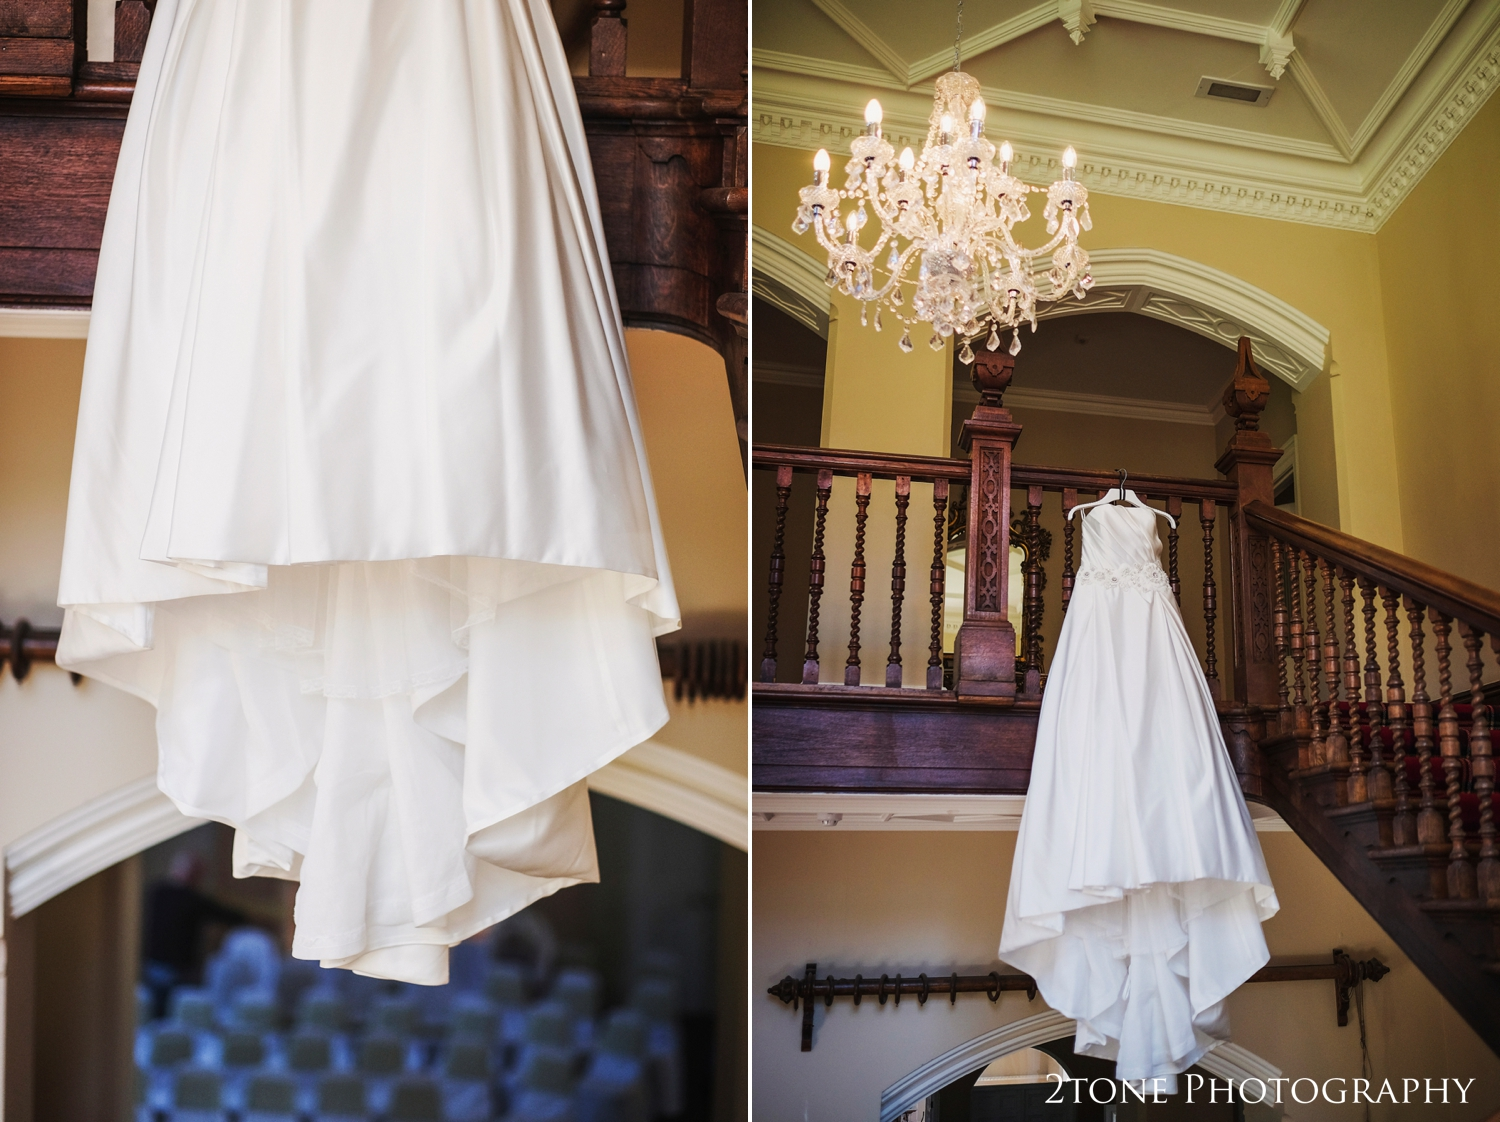 I love to be a little more bold and creative and so with Brian and June on door watch, I was able to create these images of Emma's magnificent wedding dress hung from the gorgeous grand staircase in Middleton Hall.